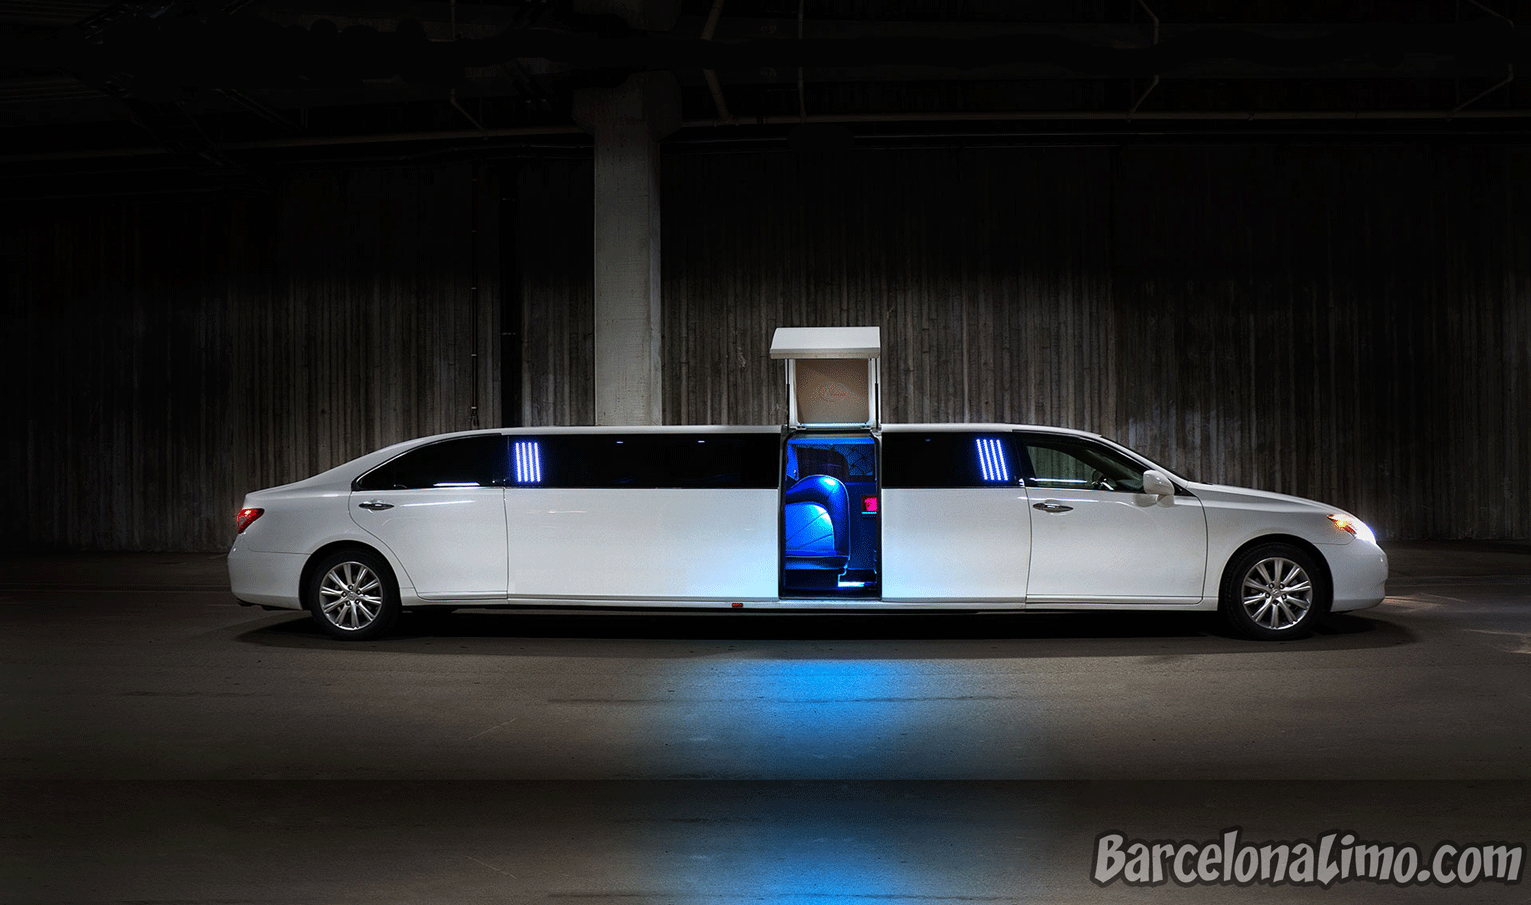 w Barcelona Sitges Traditional Stretch Limousine